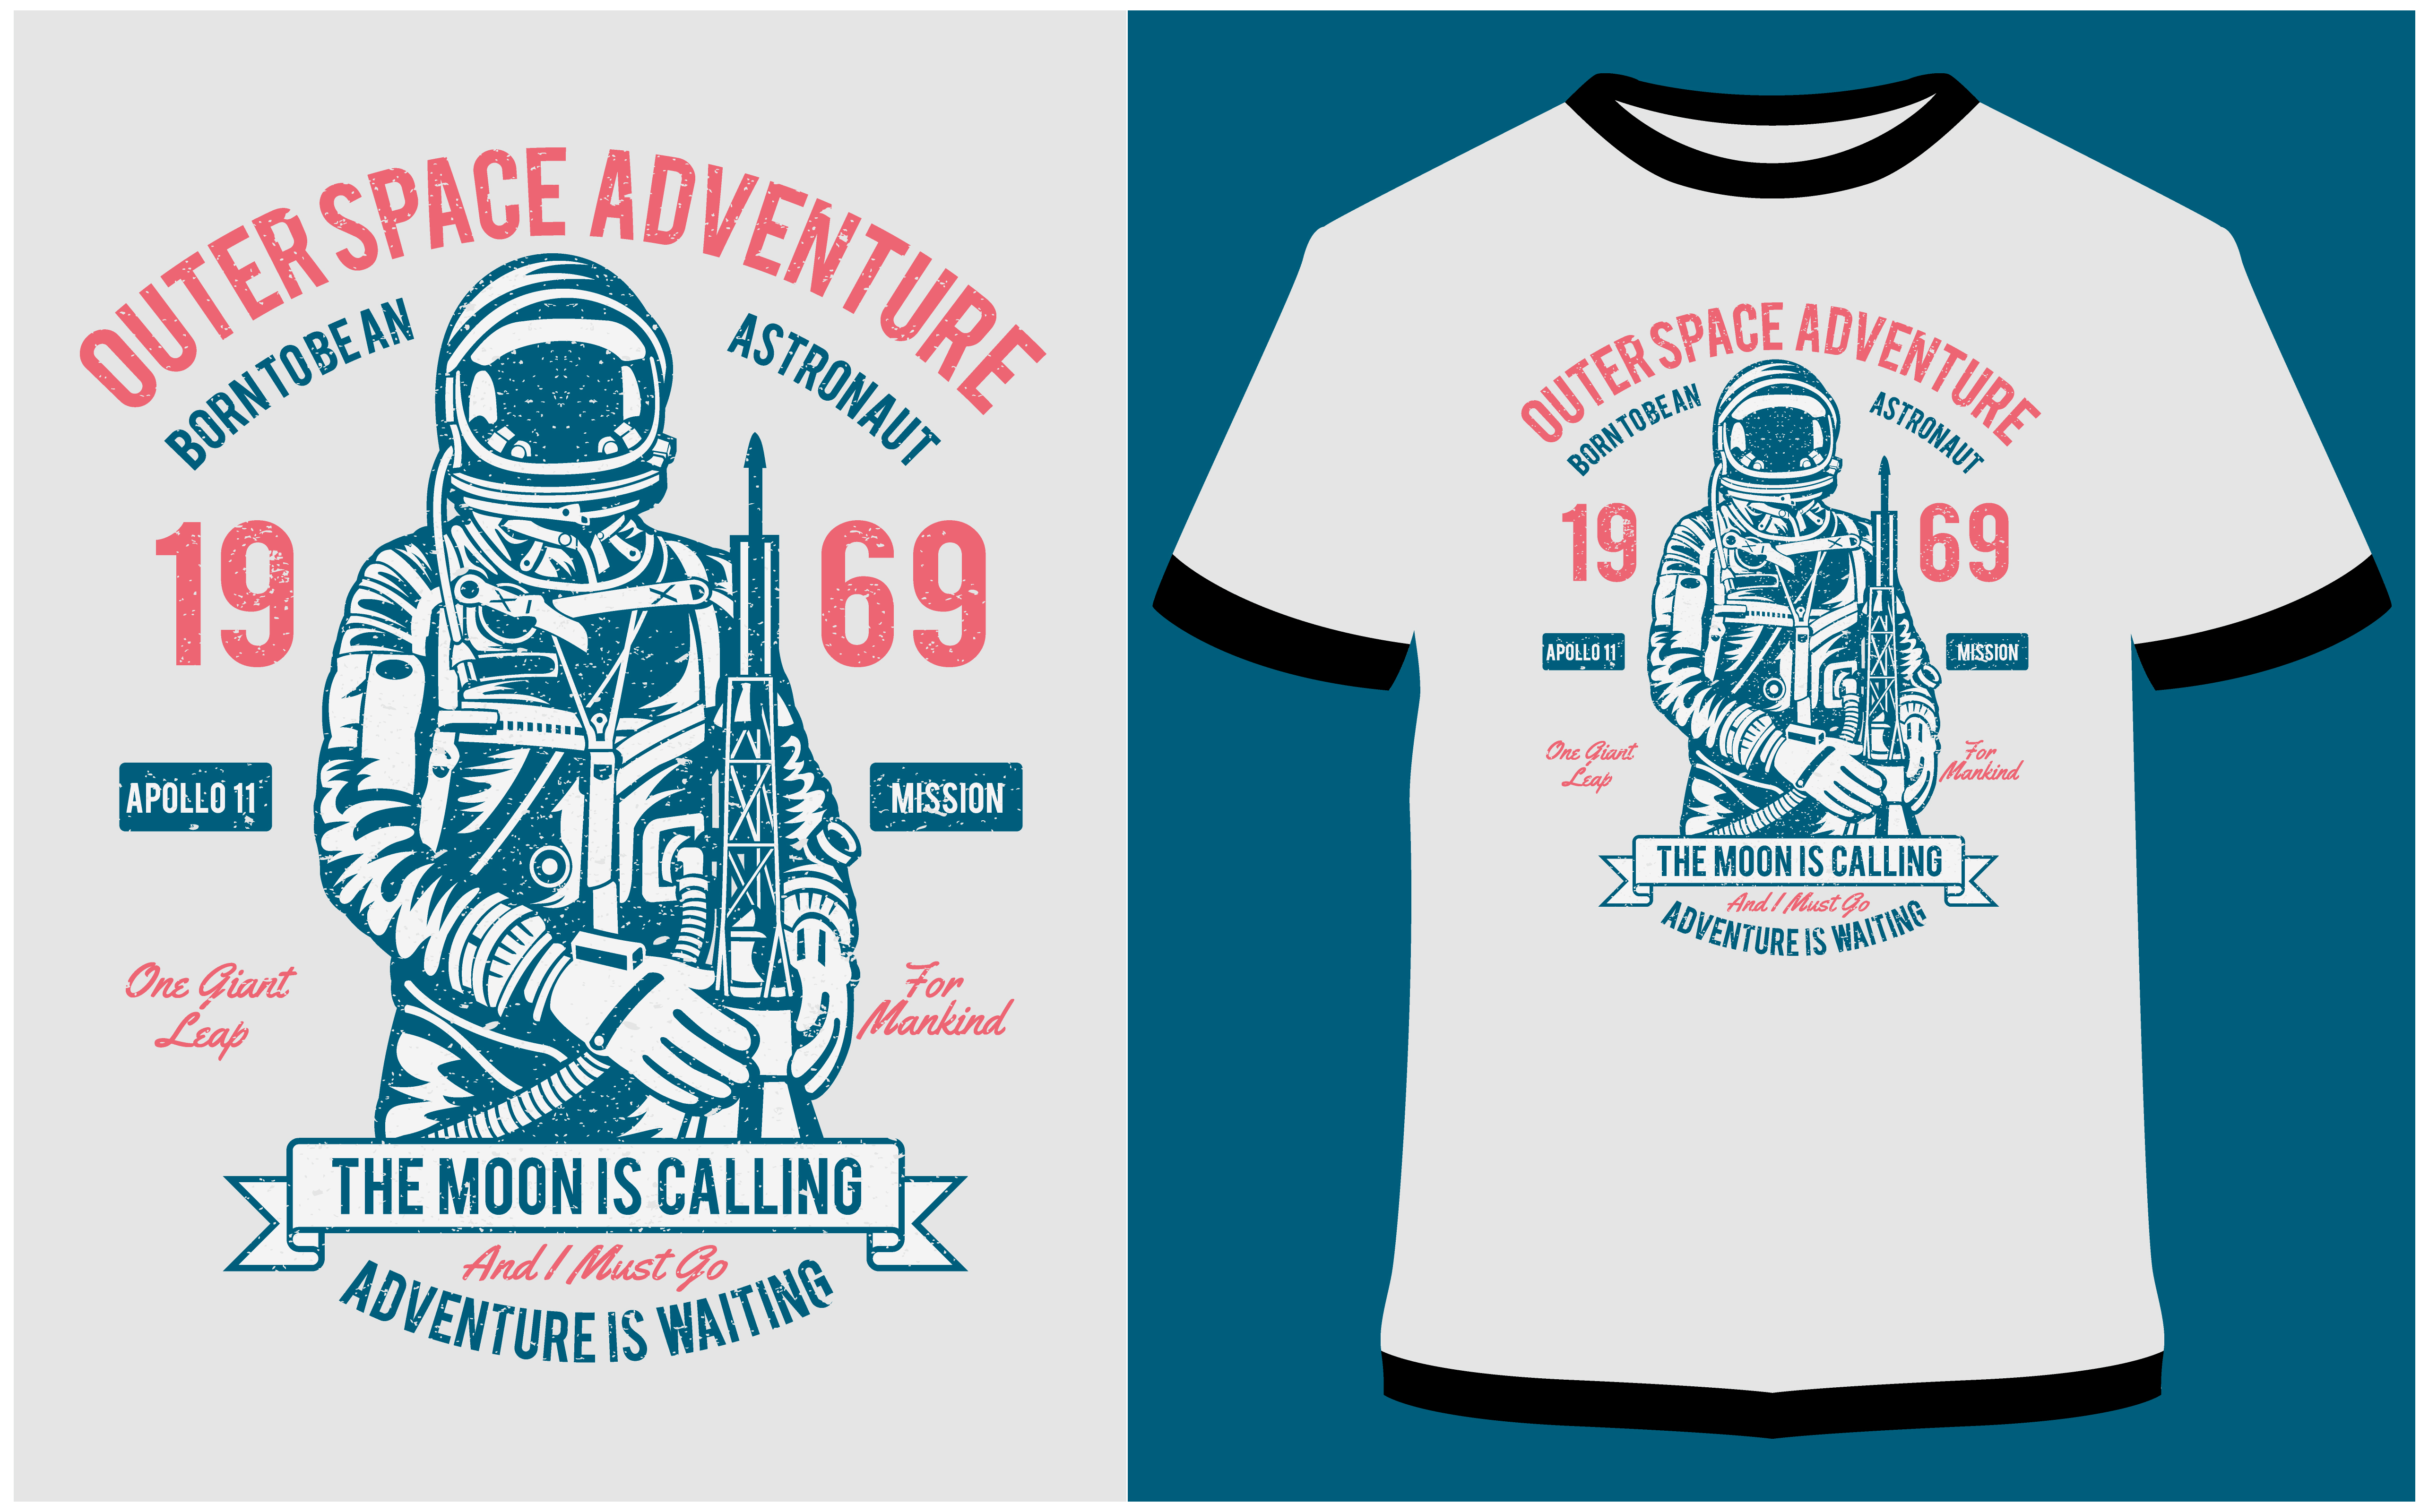 Download Free T Shirt Design Outerspace Adventure 69 Graphic By Prodesigns for Cricut Explore, Silhouette and other cutting machines.